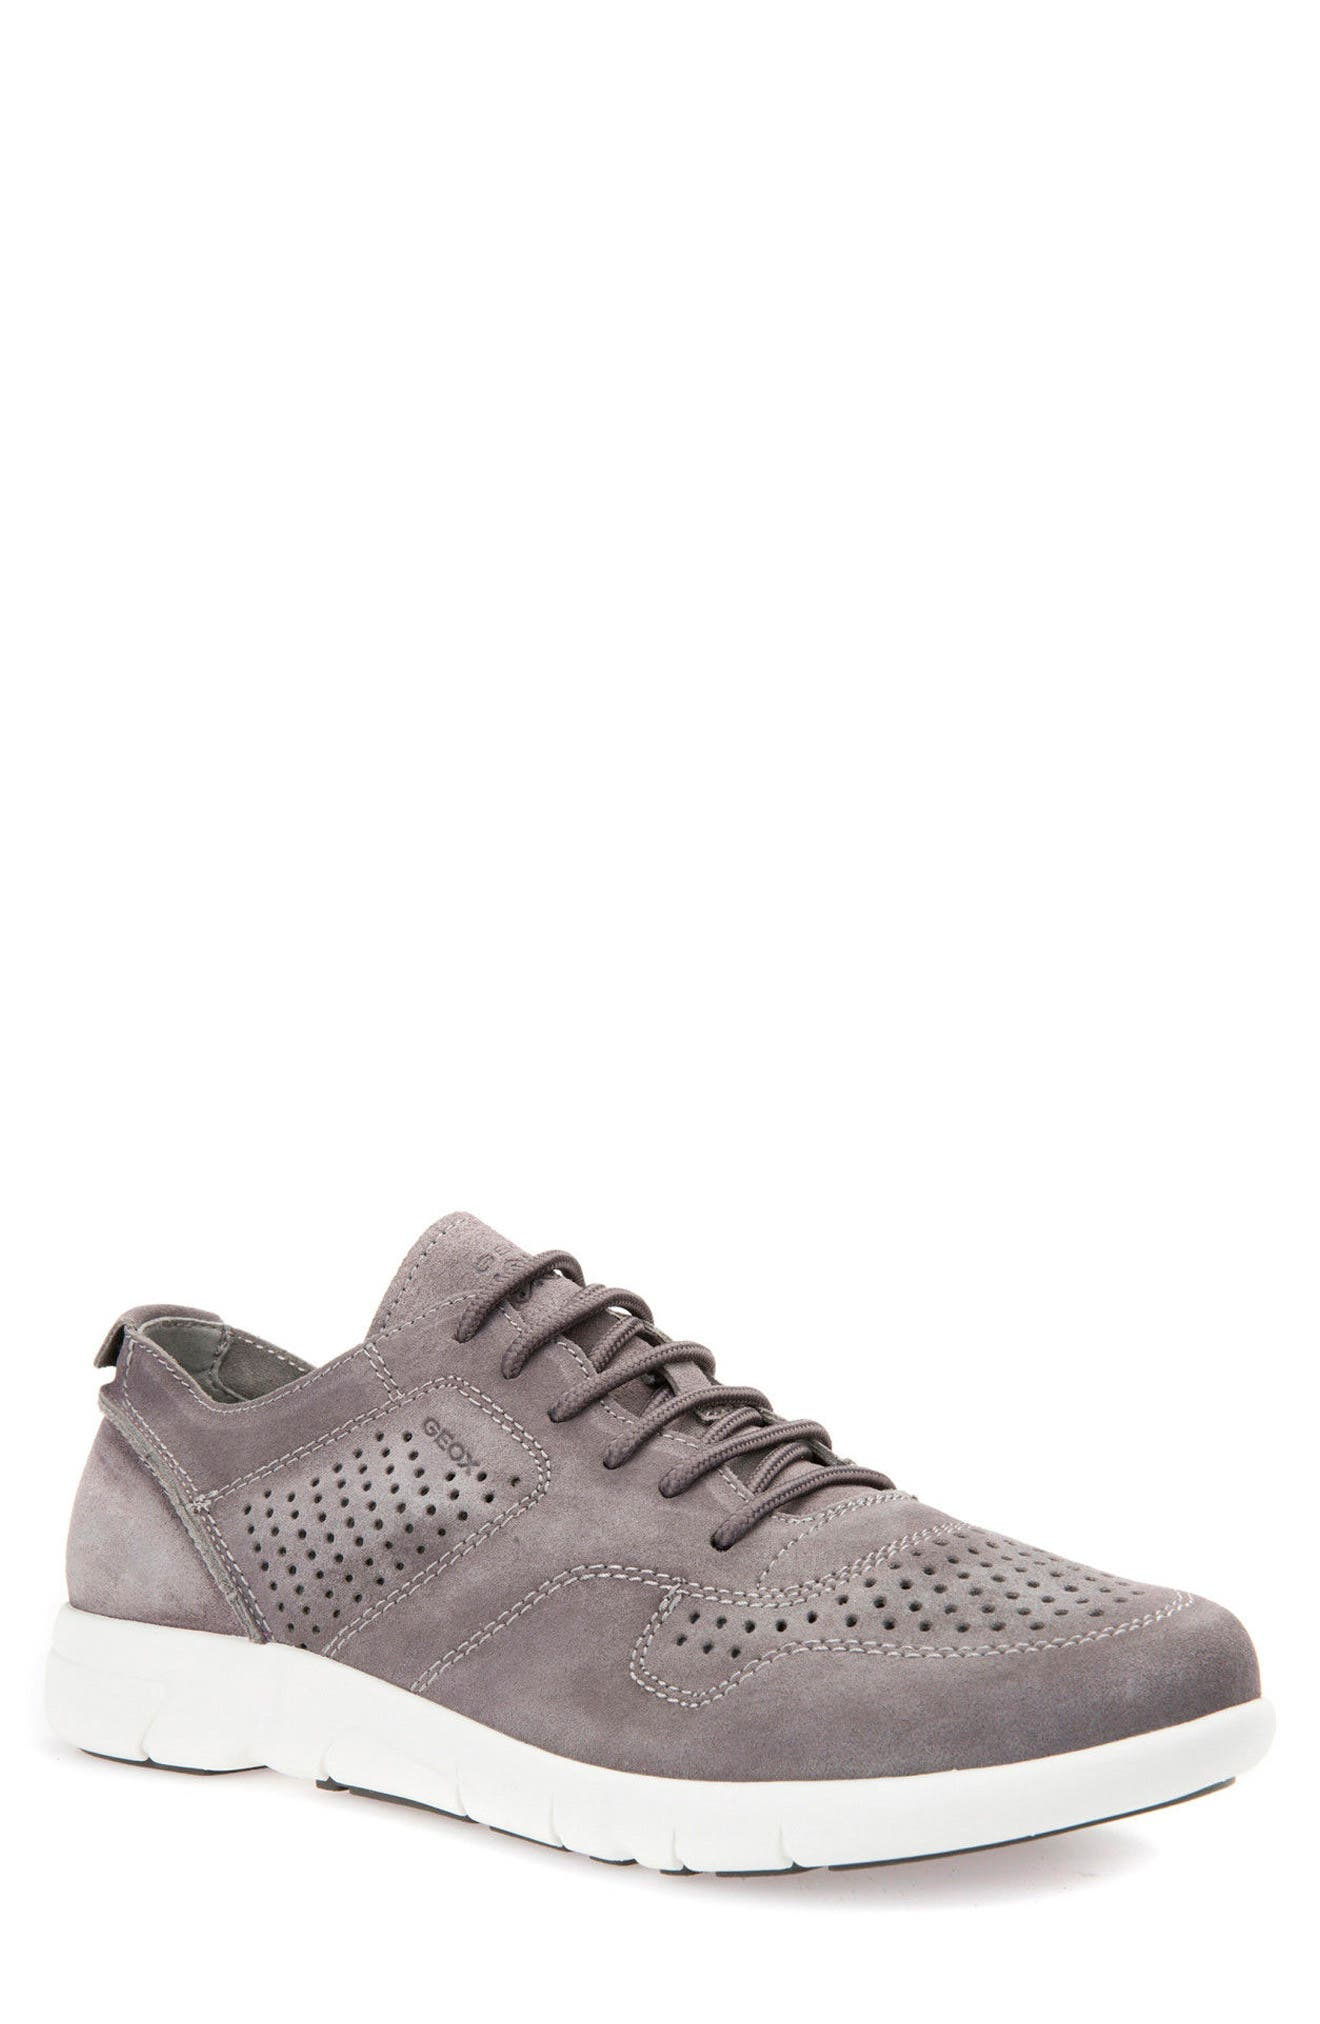 Brattley 2 Perforated Sneaker,                             Main thumbnail 1, color,                             020